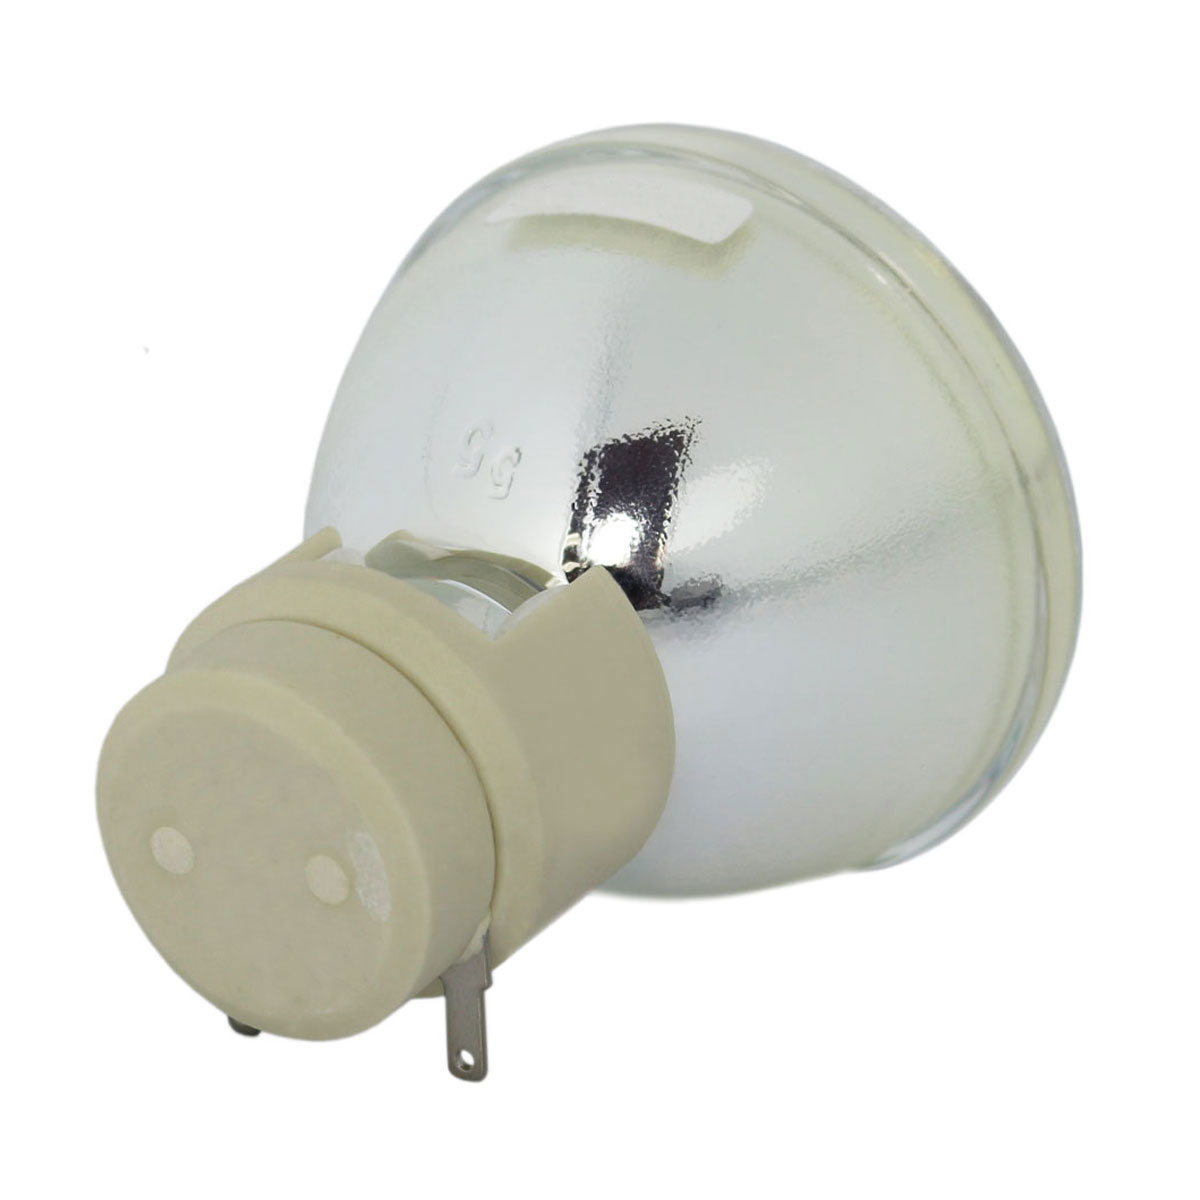 Lutema Economy for Vivitek DX813 Projector Lamp (Bulb Only) - image 1 of 5